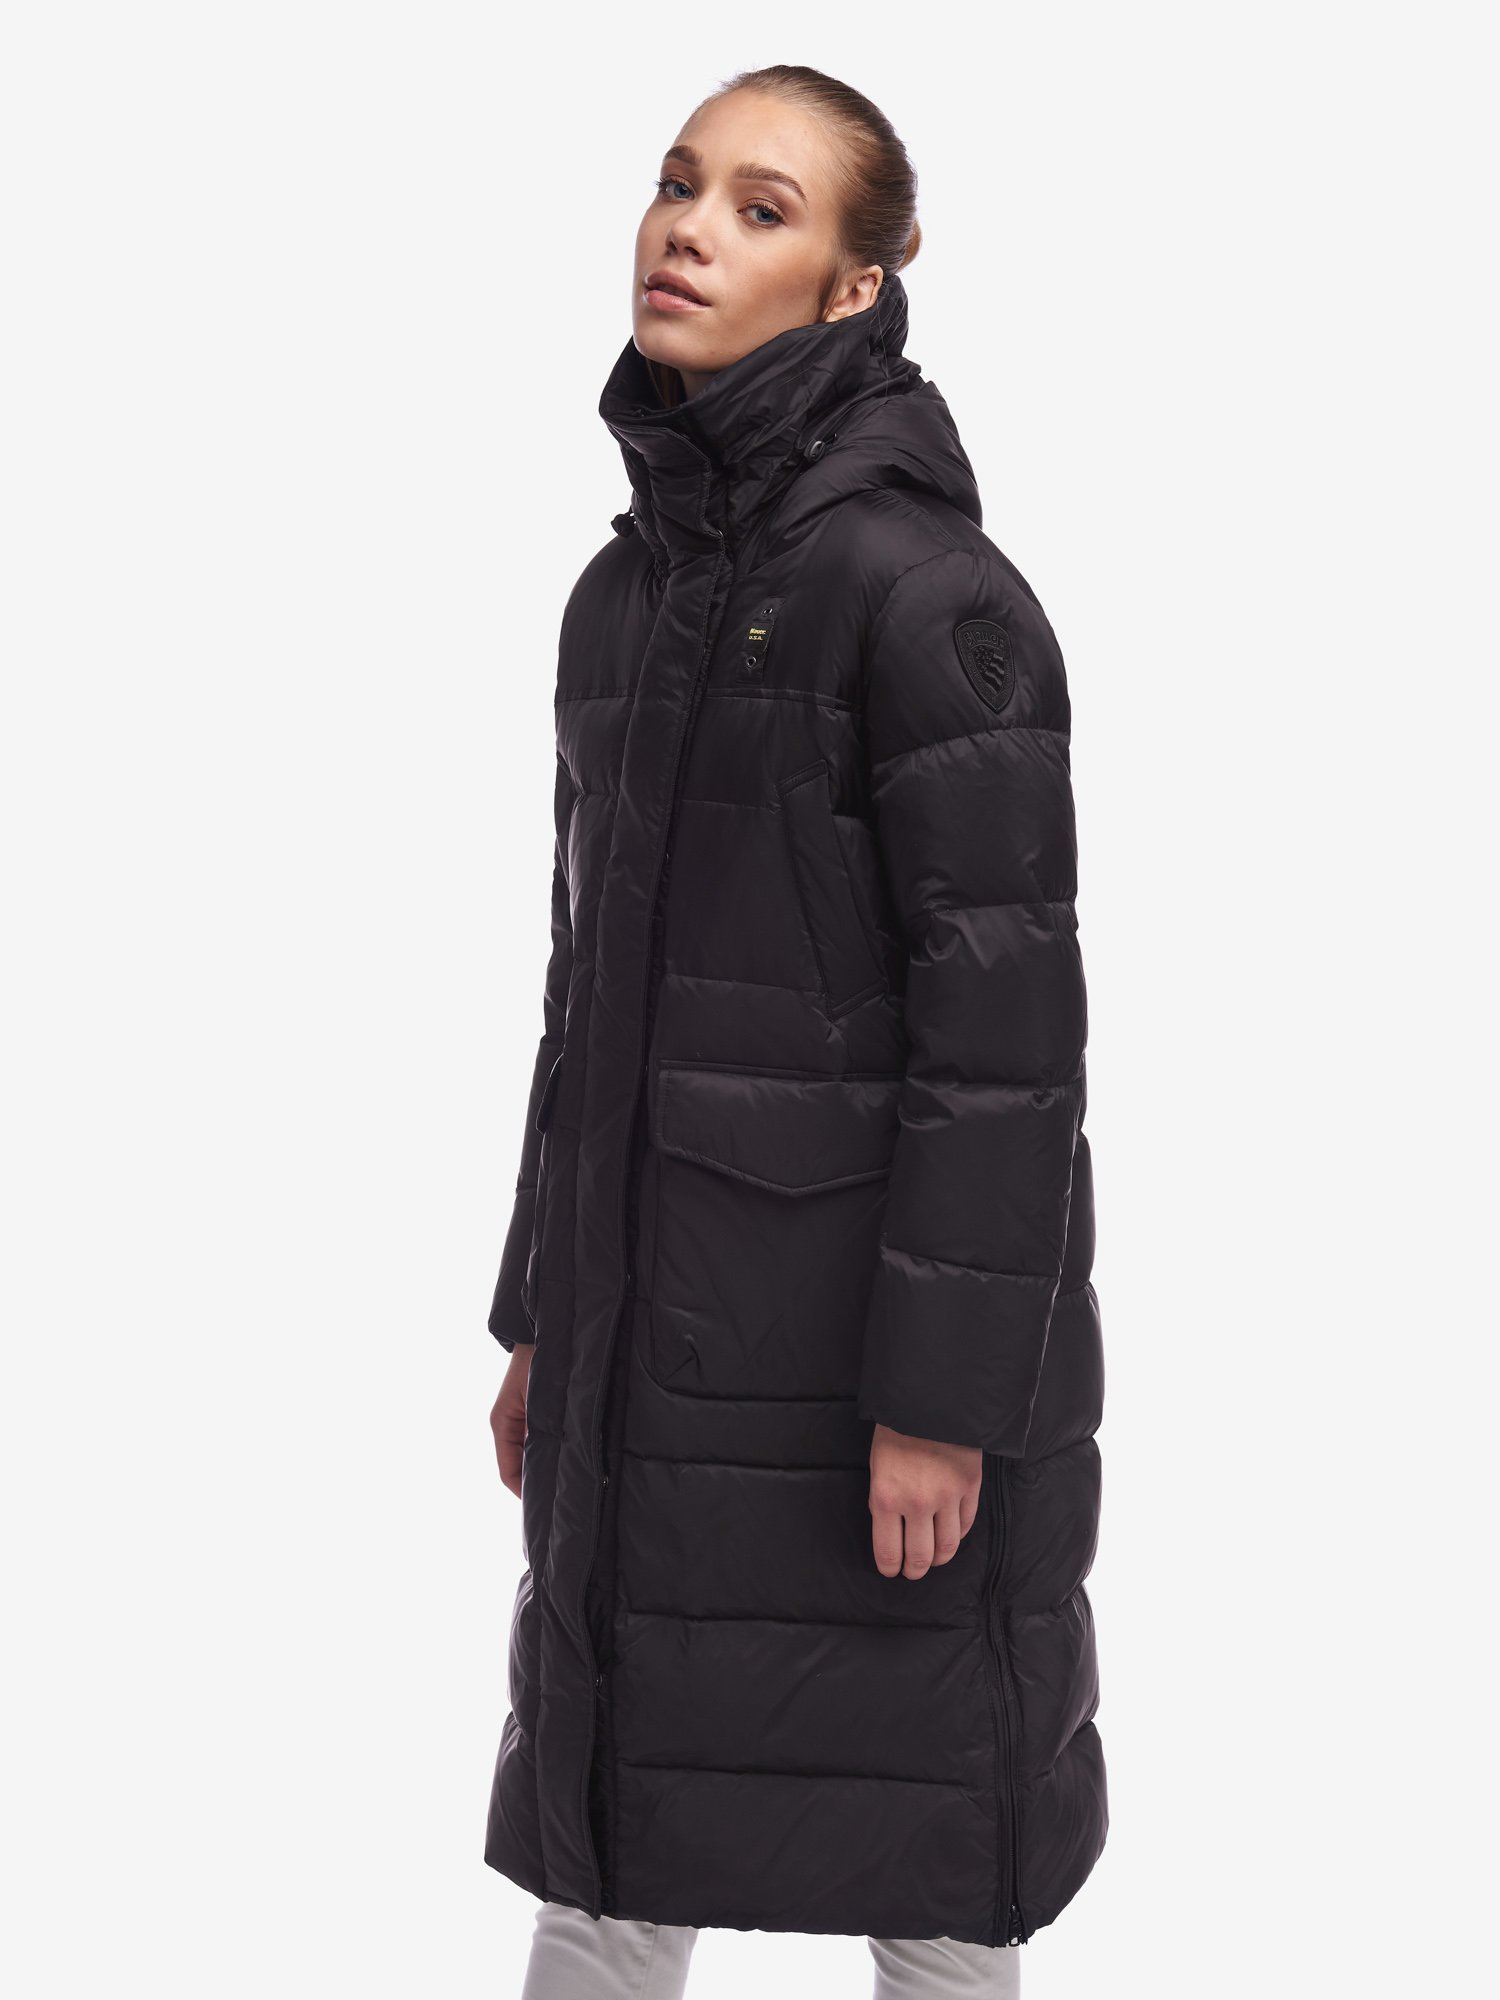 Blauer - LOWE LONG DOWN JACKET WITH SLITS AND WITHOUT FUR - Black - Blauer